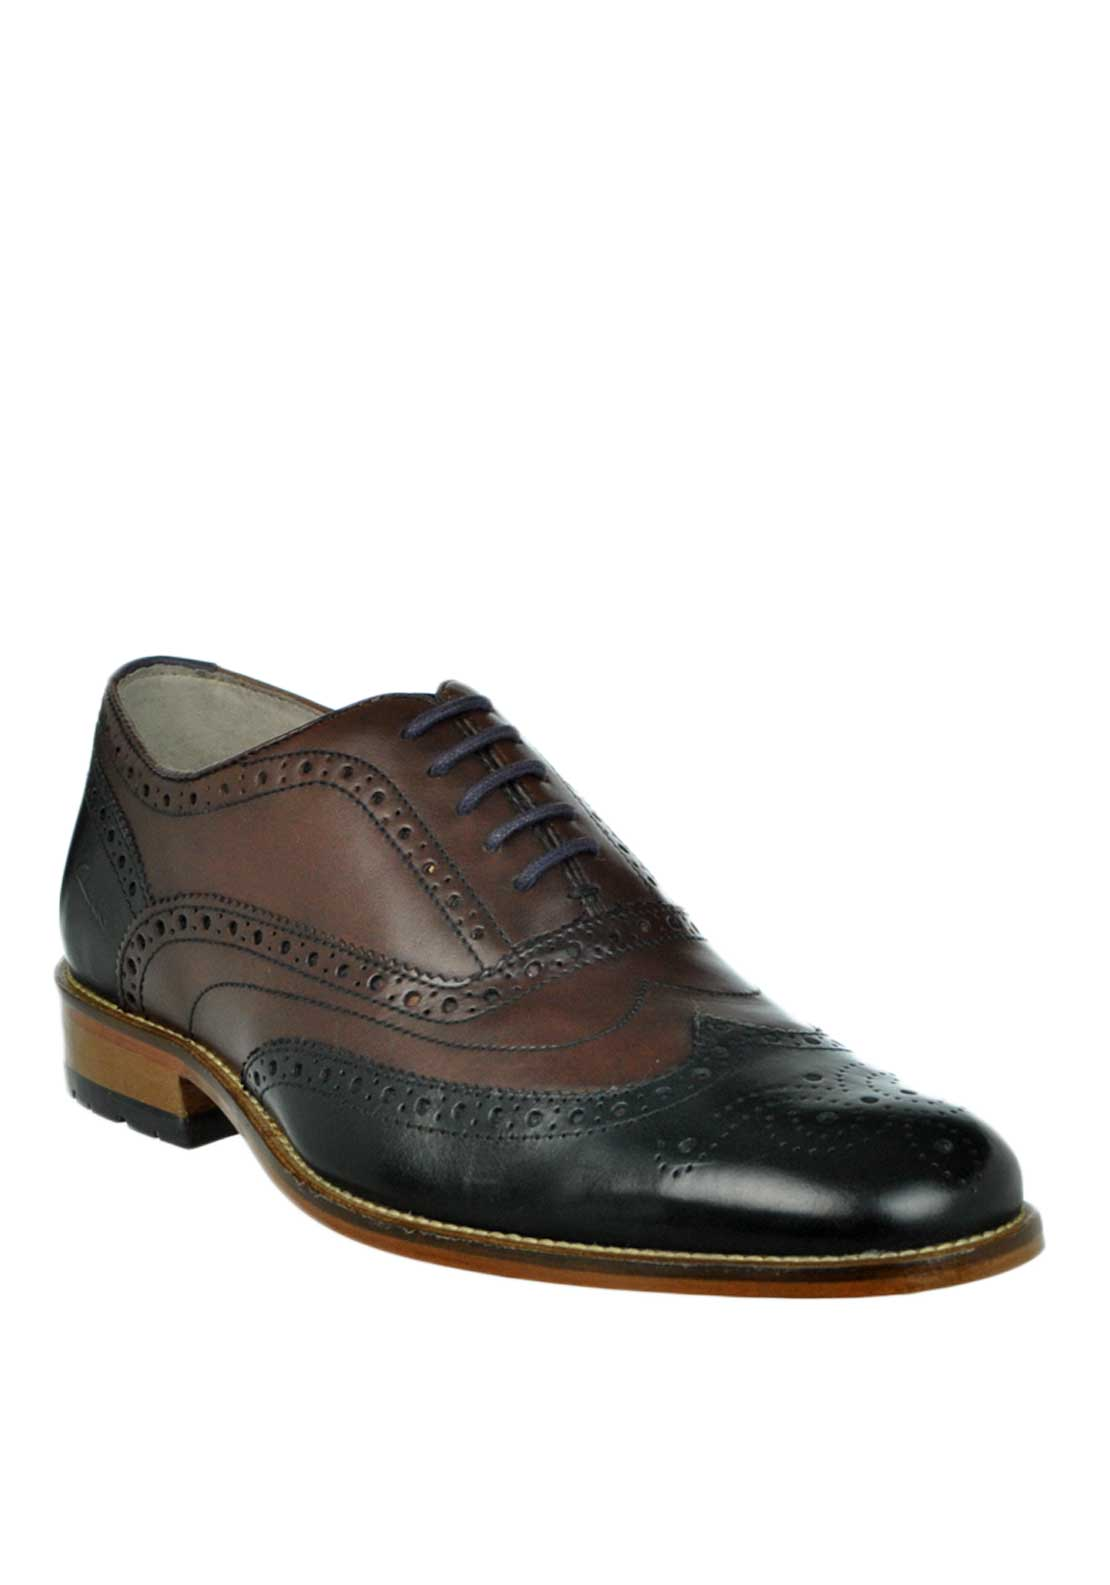 Clarks Mens Penton Limit Two Tone Leather Brogue Shoe, Brown and Black